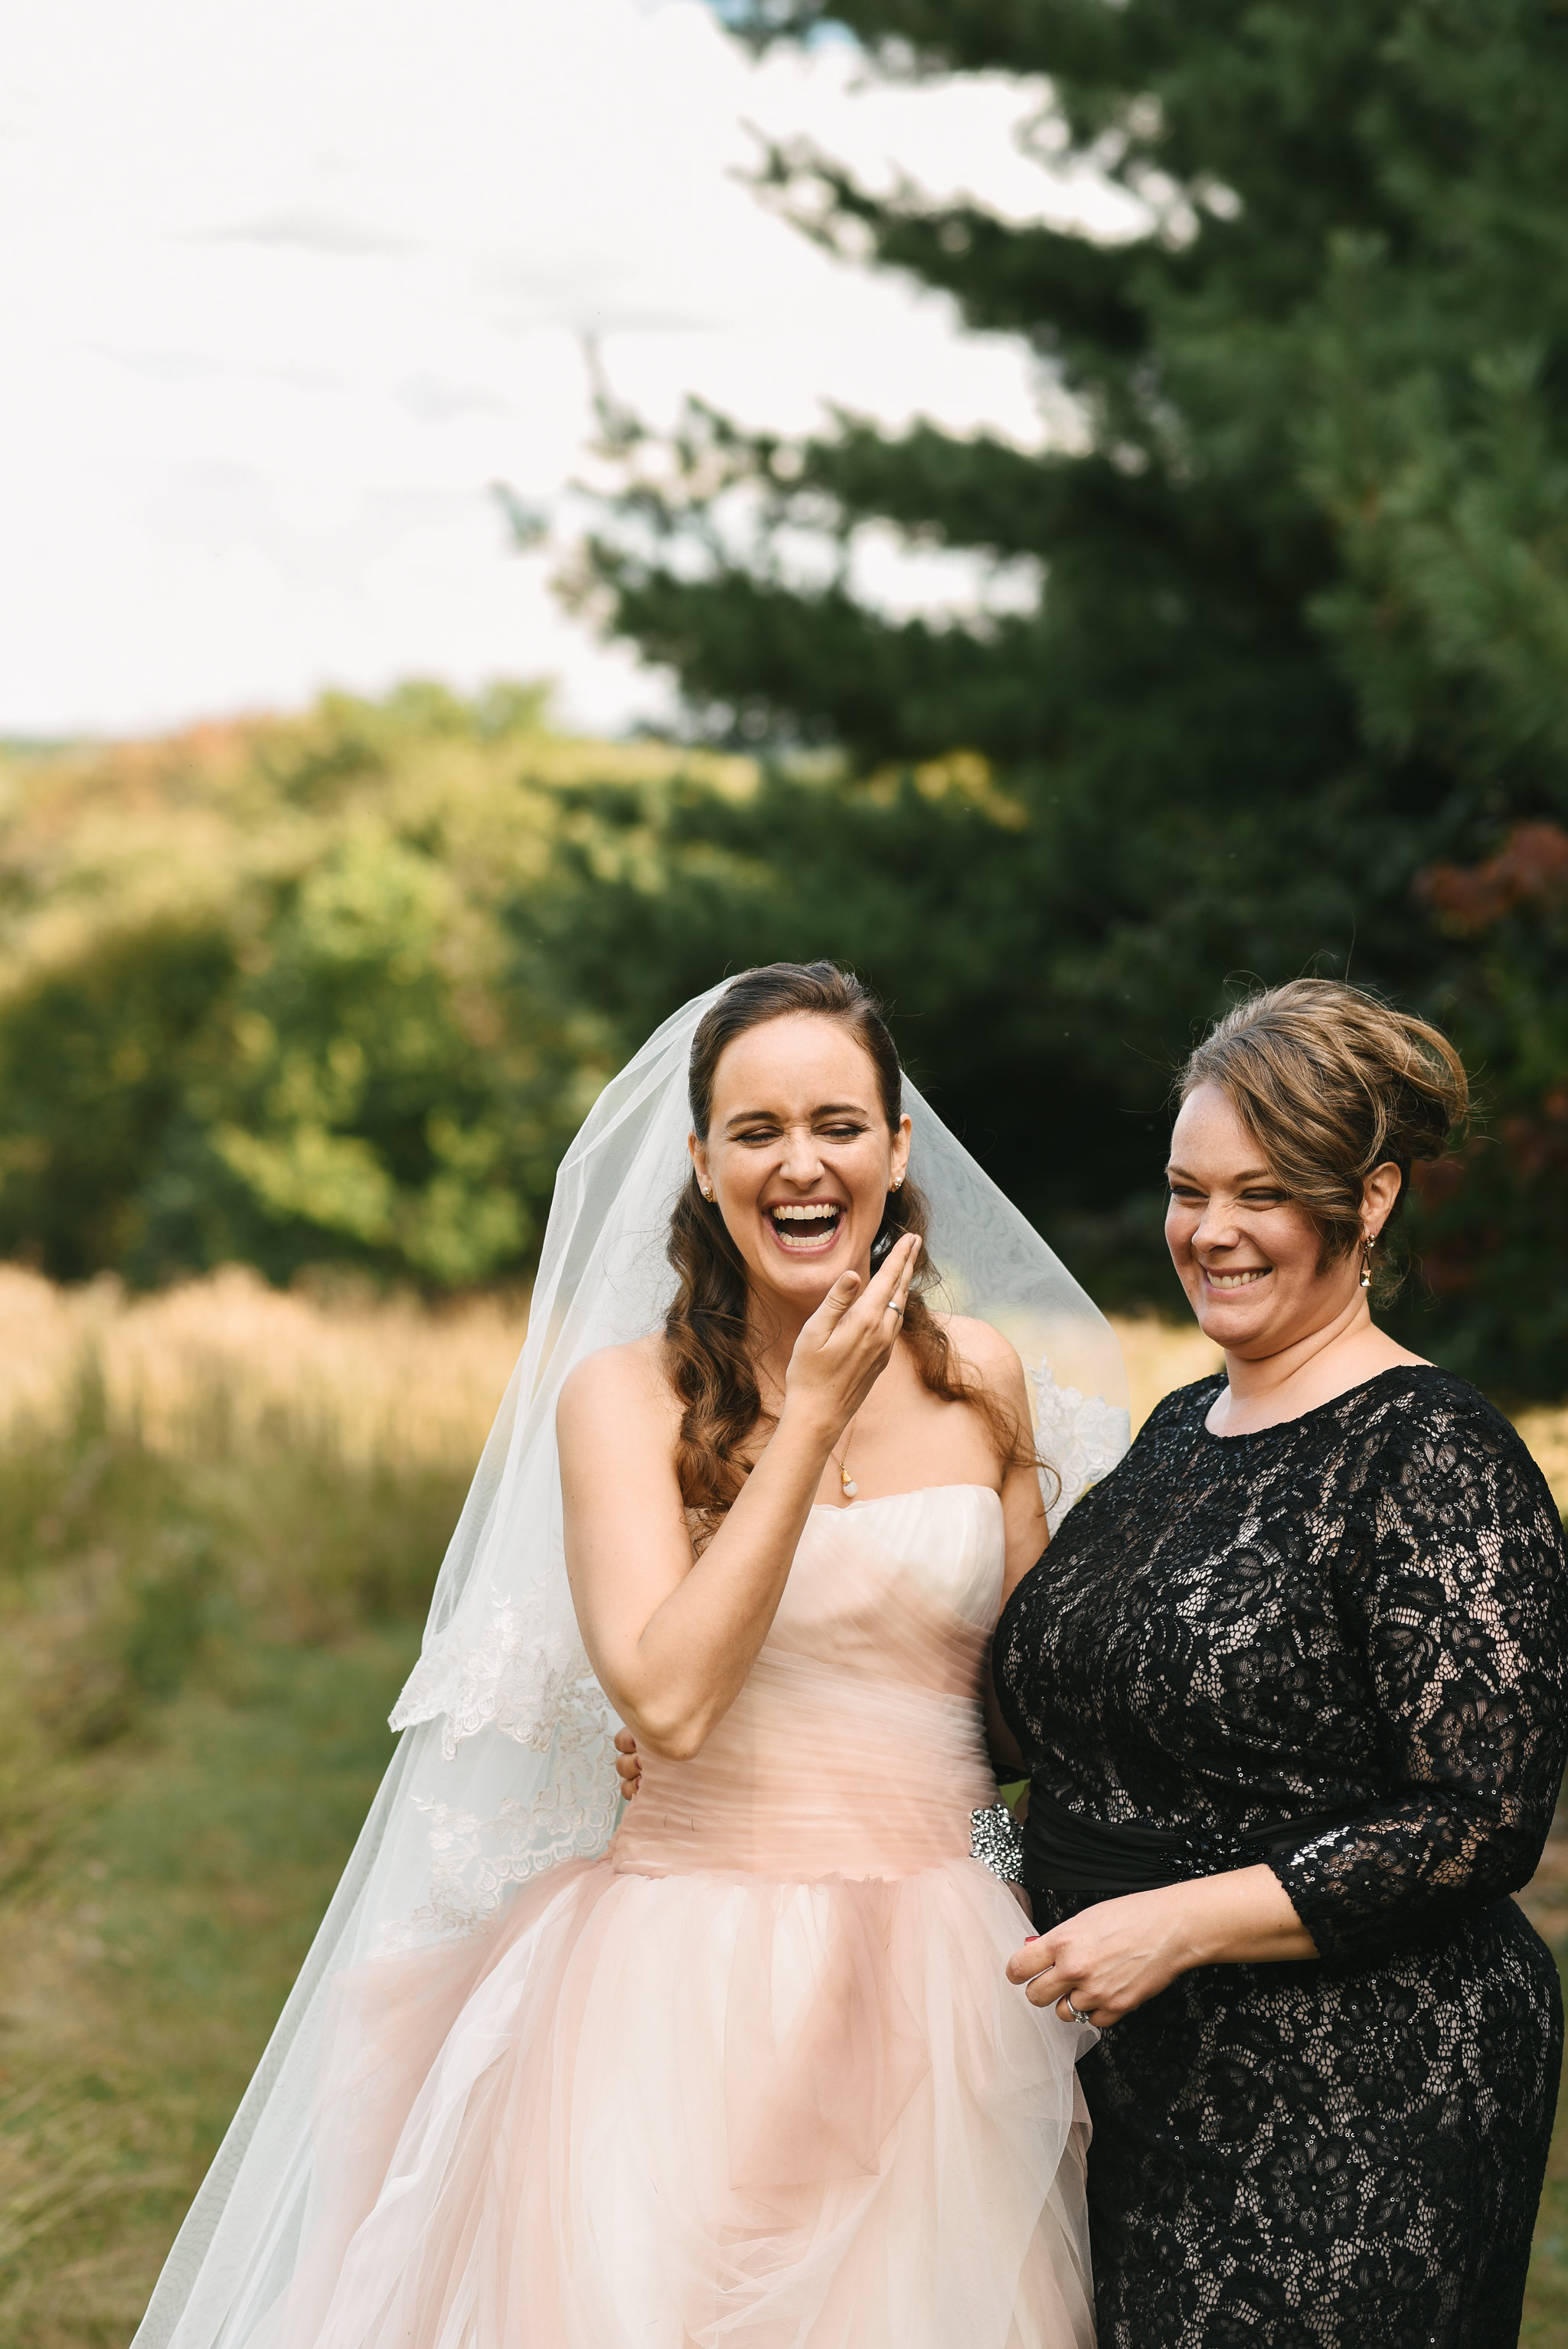 Vintage, DIY, Rustic, Germantown, Baltimore Wedding Photographer, Alternative, Casual, Outdoor Wedding, Church Wedding, Whimsical, Campground, Wedding Jewelry, Bride Laughing, Portrait